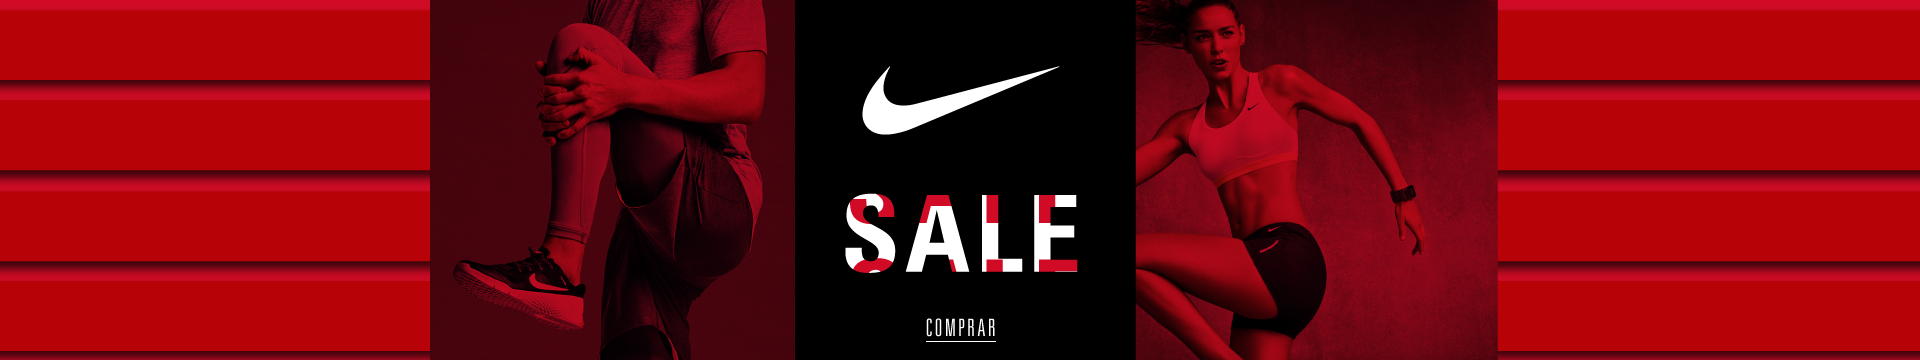 BANNER Nike Sale